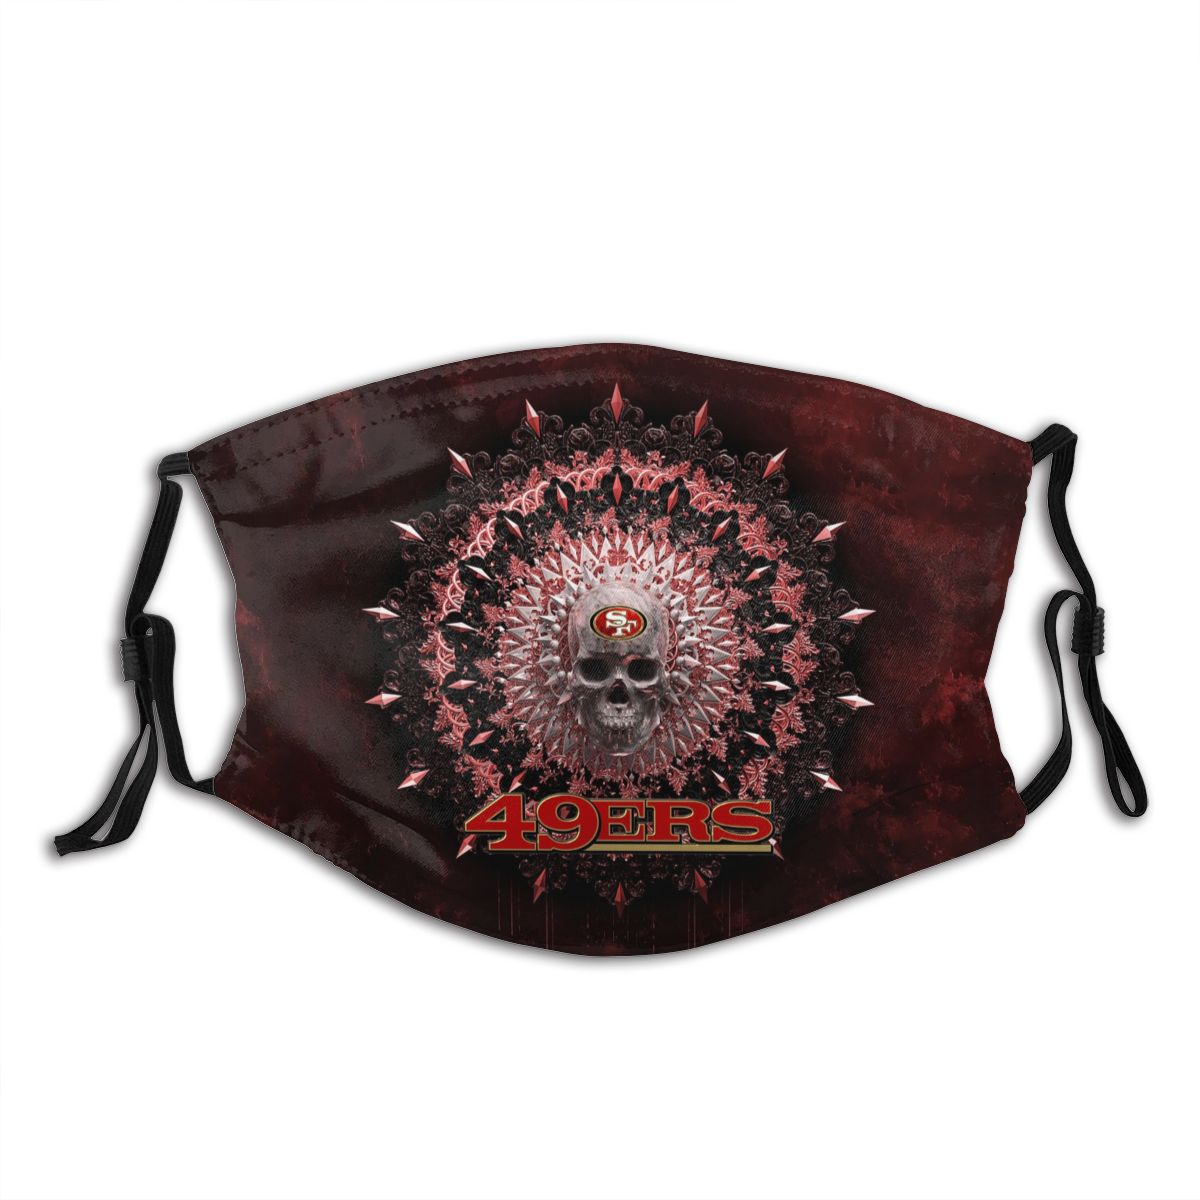 49ers Adult Cloth Face Covering With Filter